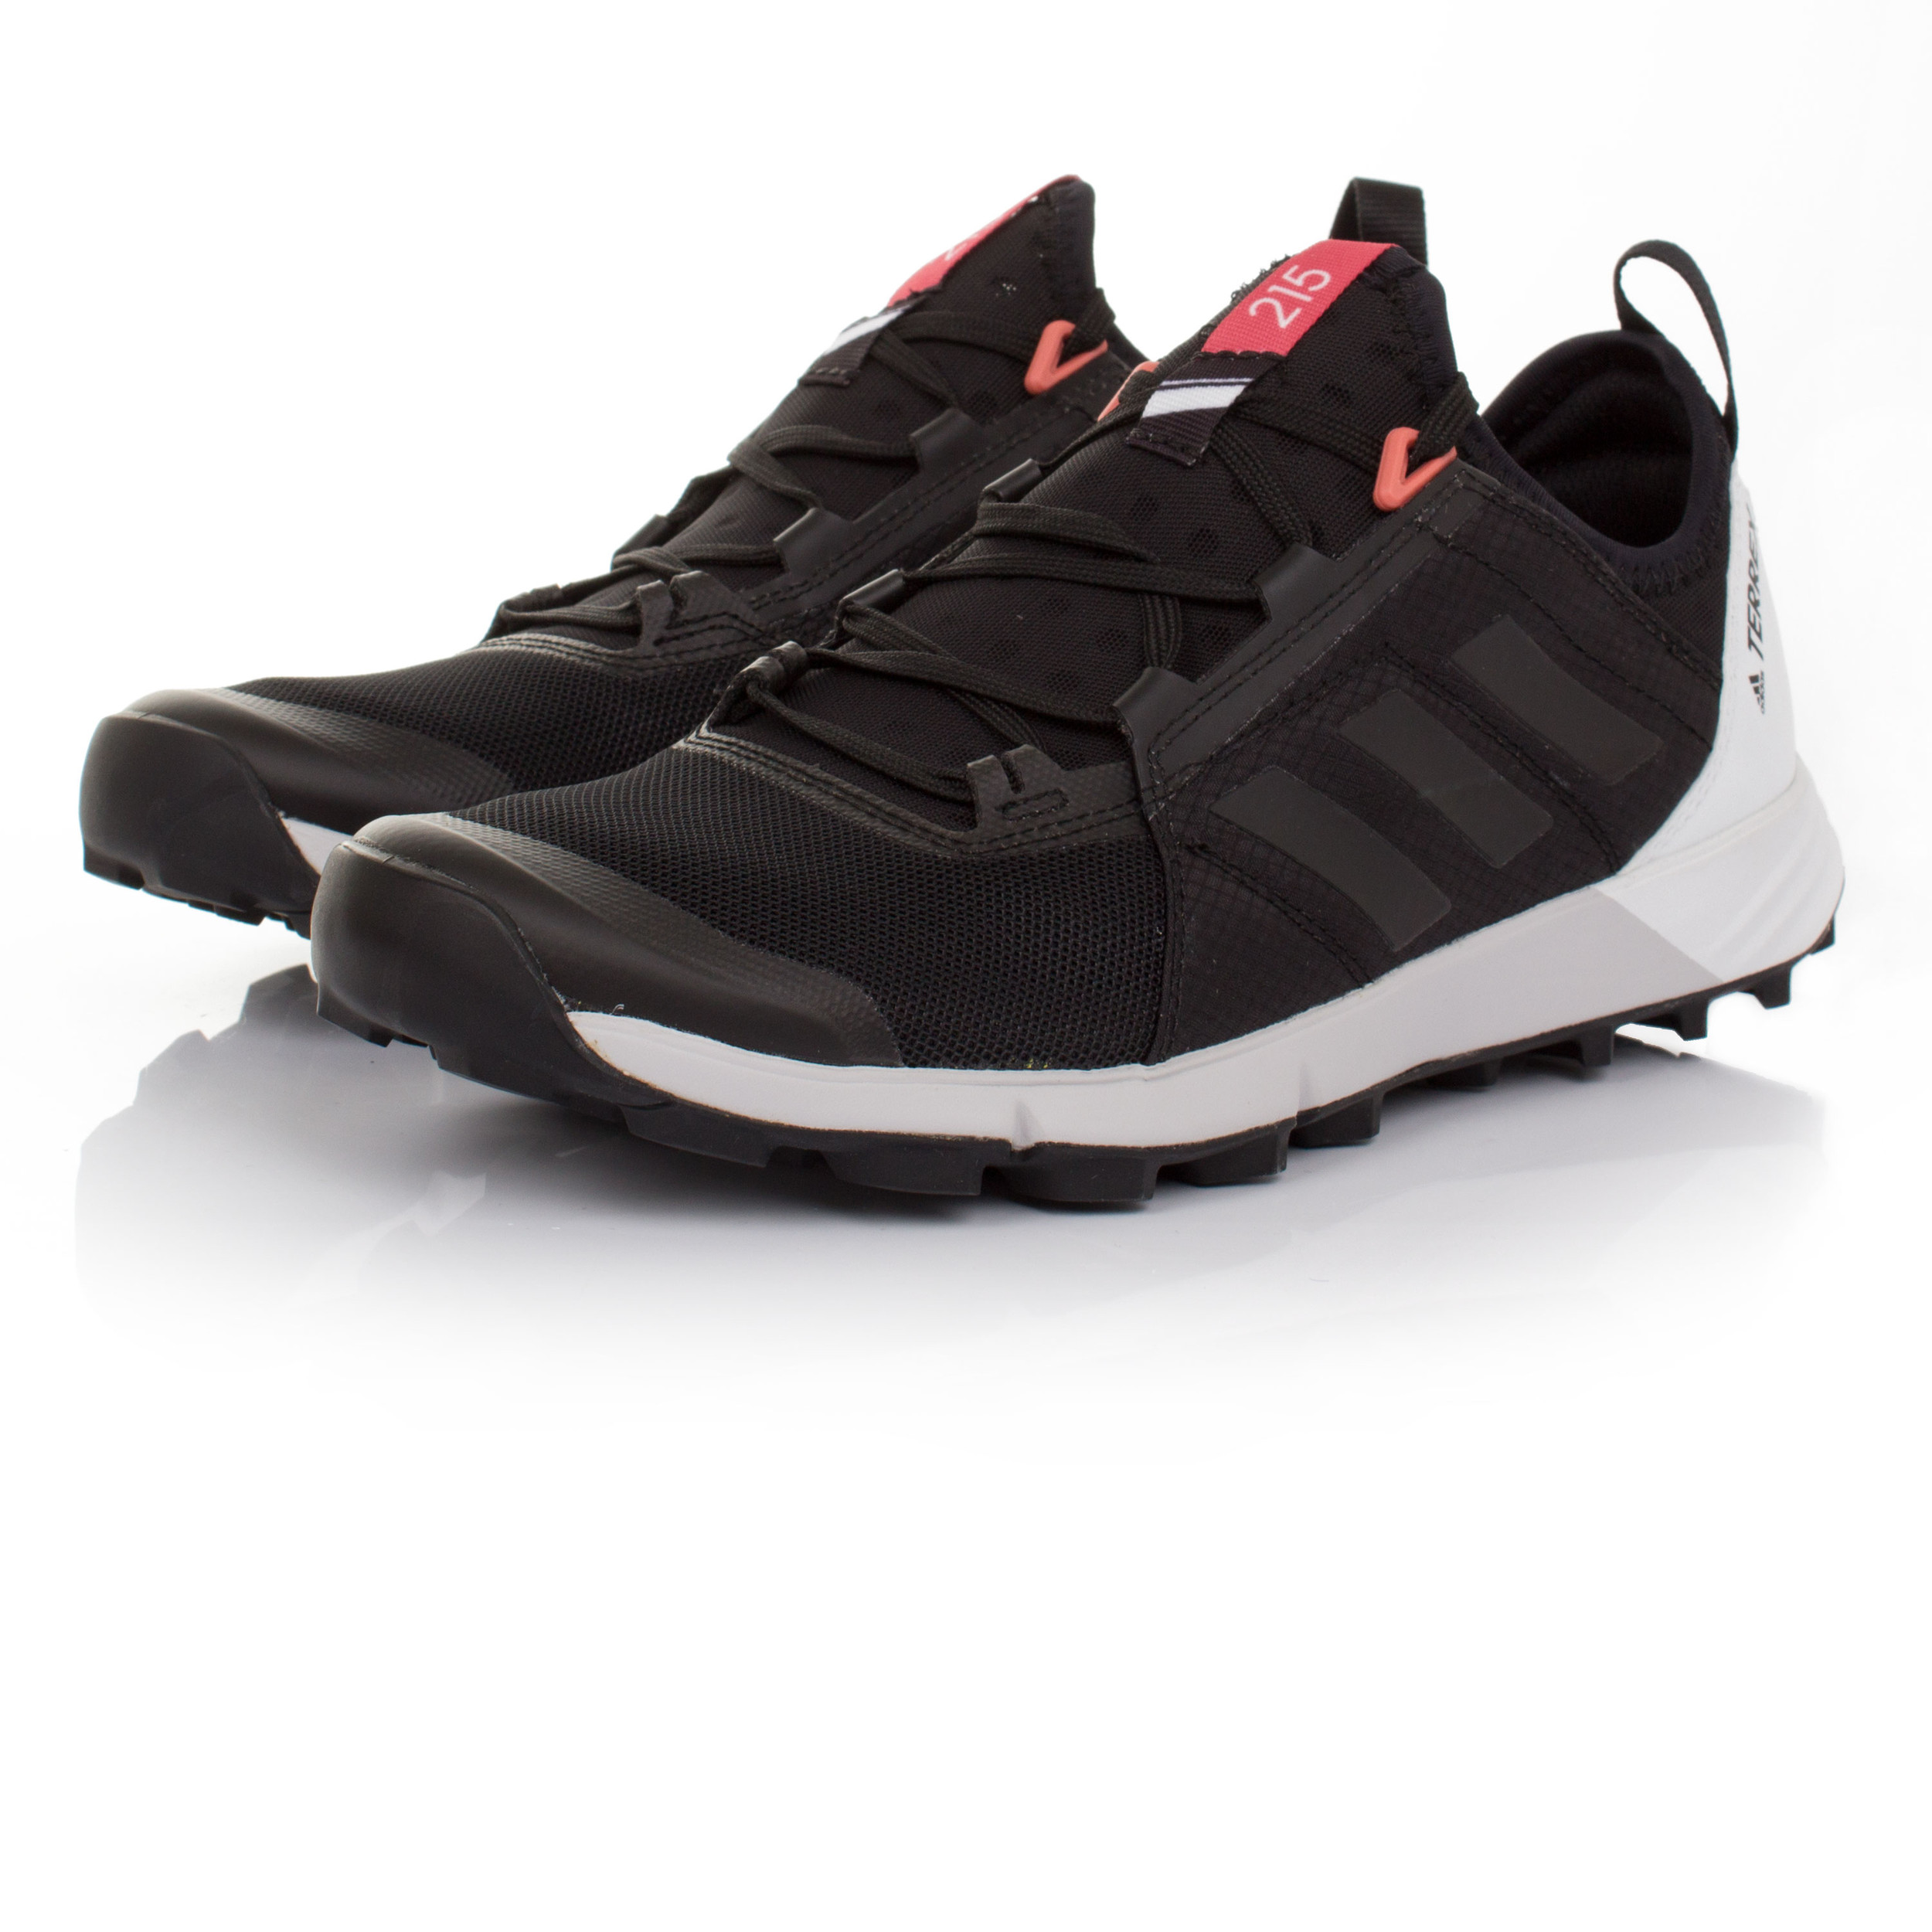 Adidas-Terrex-Agravic-Speed-Womens-Black-Sneakers-Running-